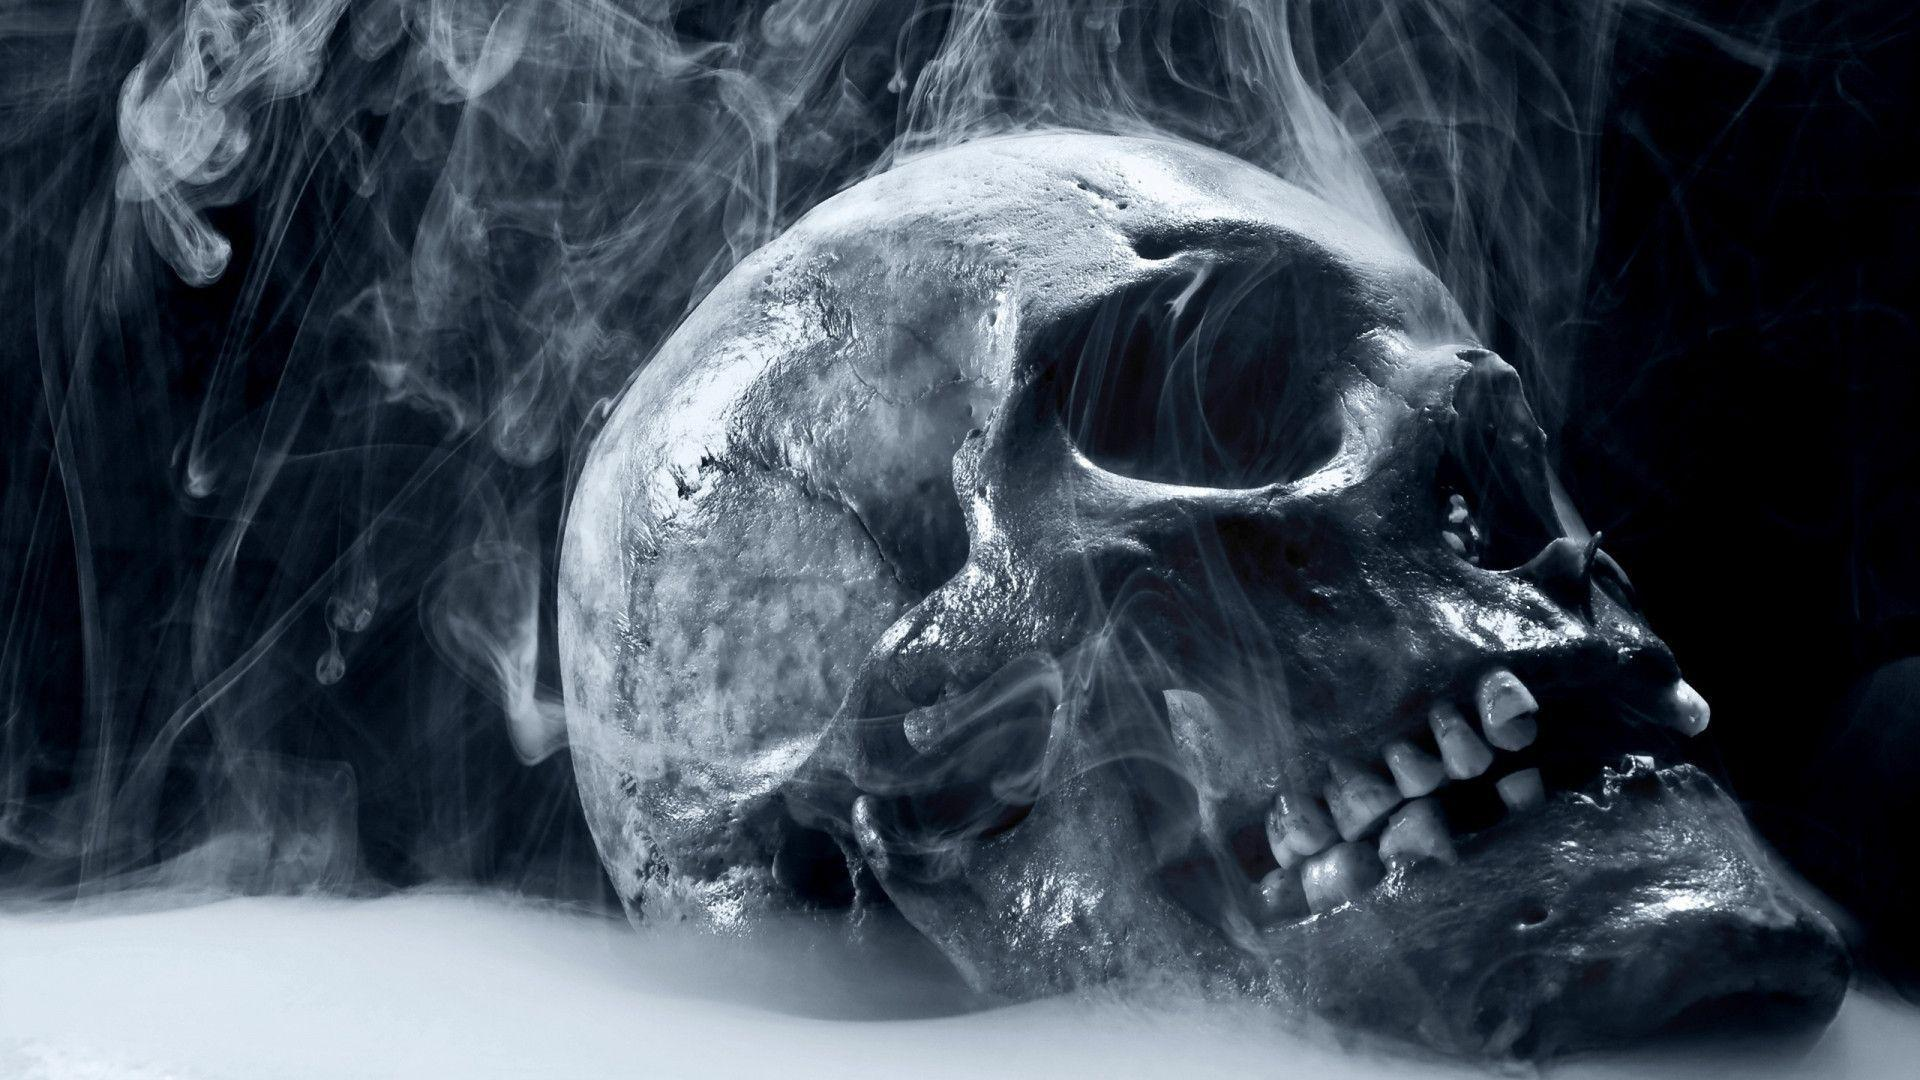 Hd Skull Wallpapers Wallpaper Cave